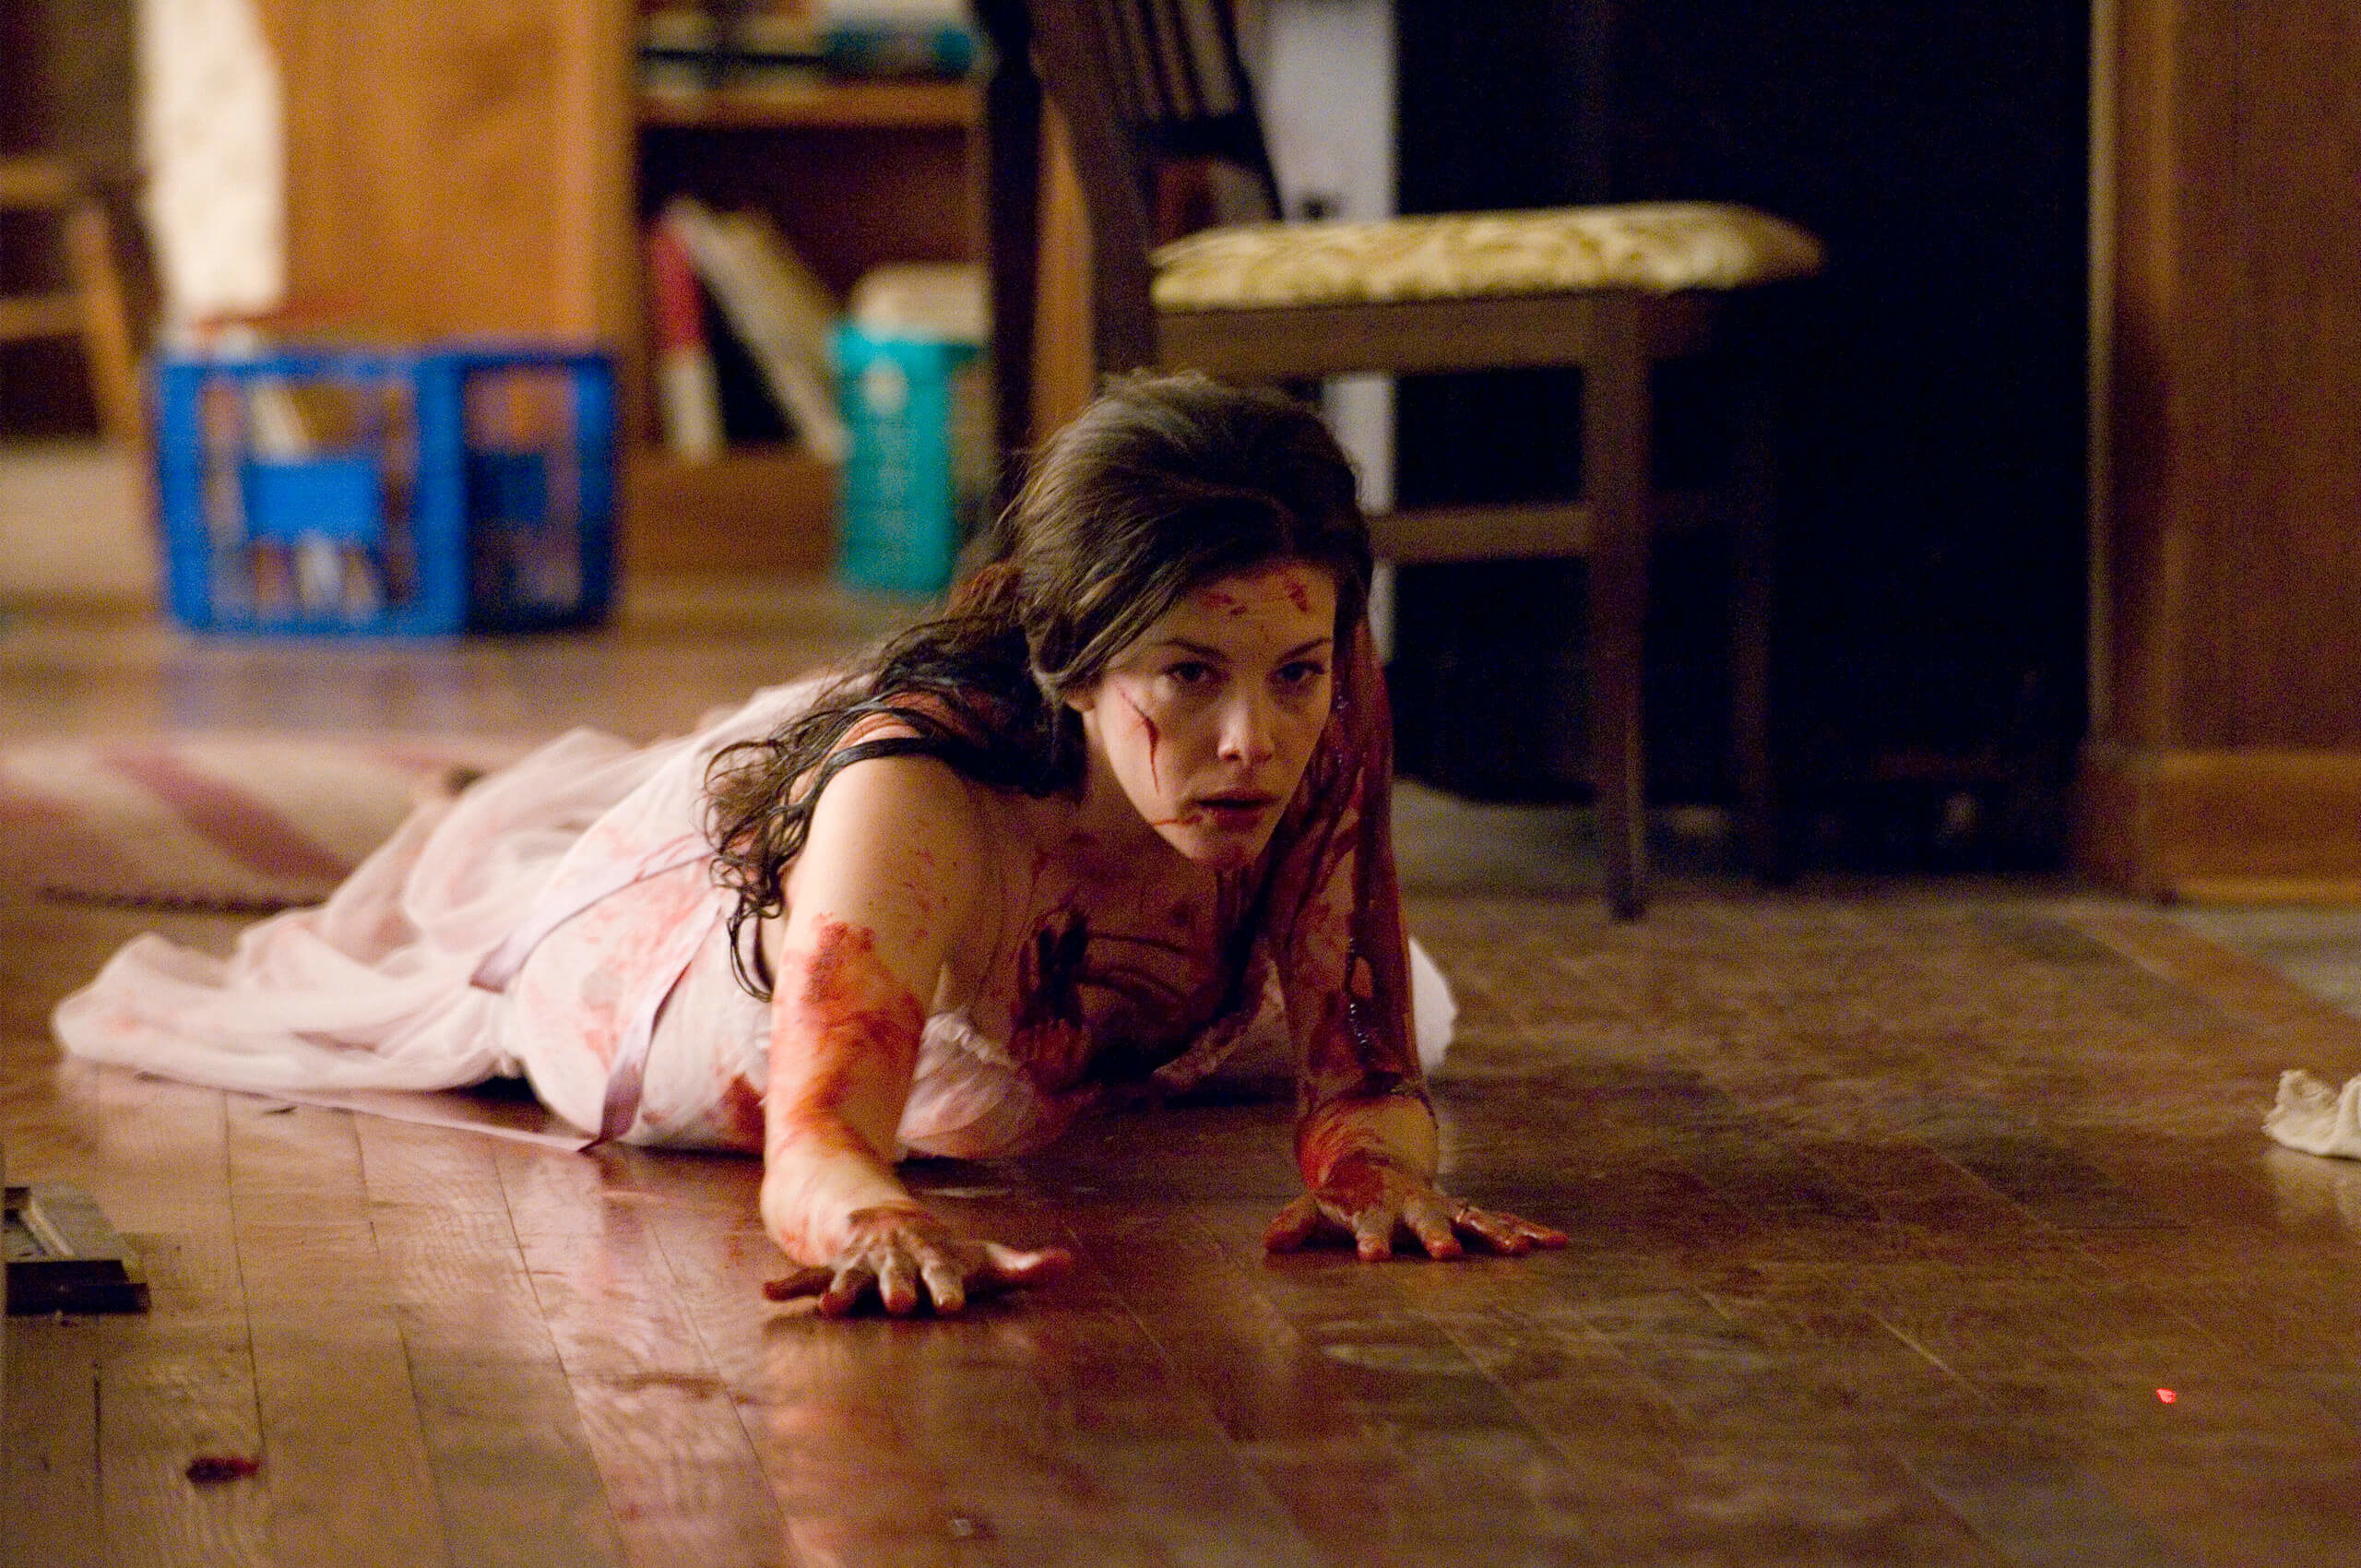 Liv Tyler in the Strangers bloody and in distress on the floor as she tries to escape a trio of murders